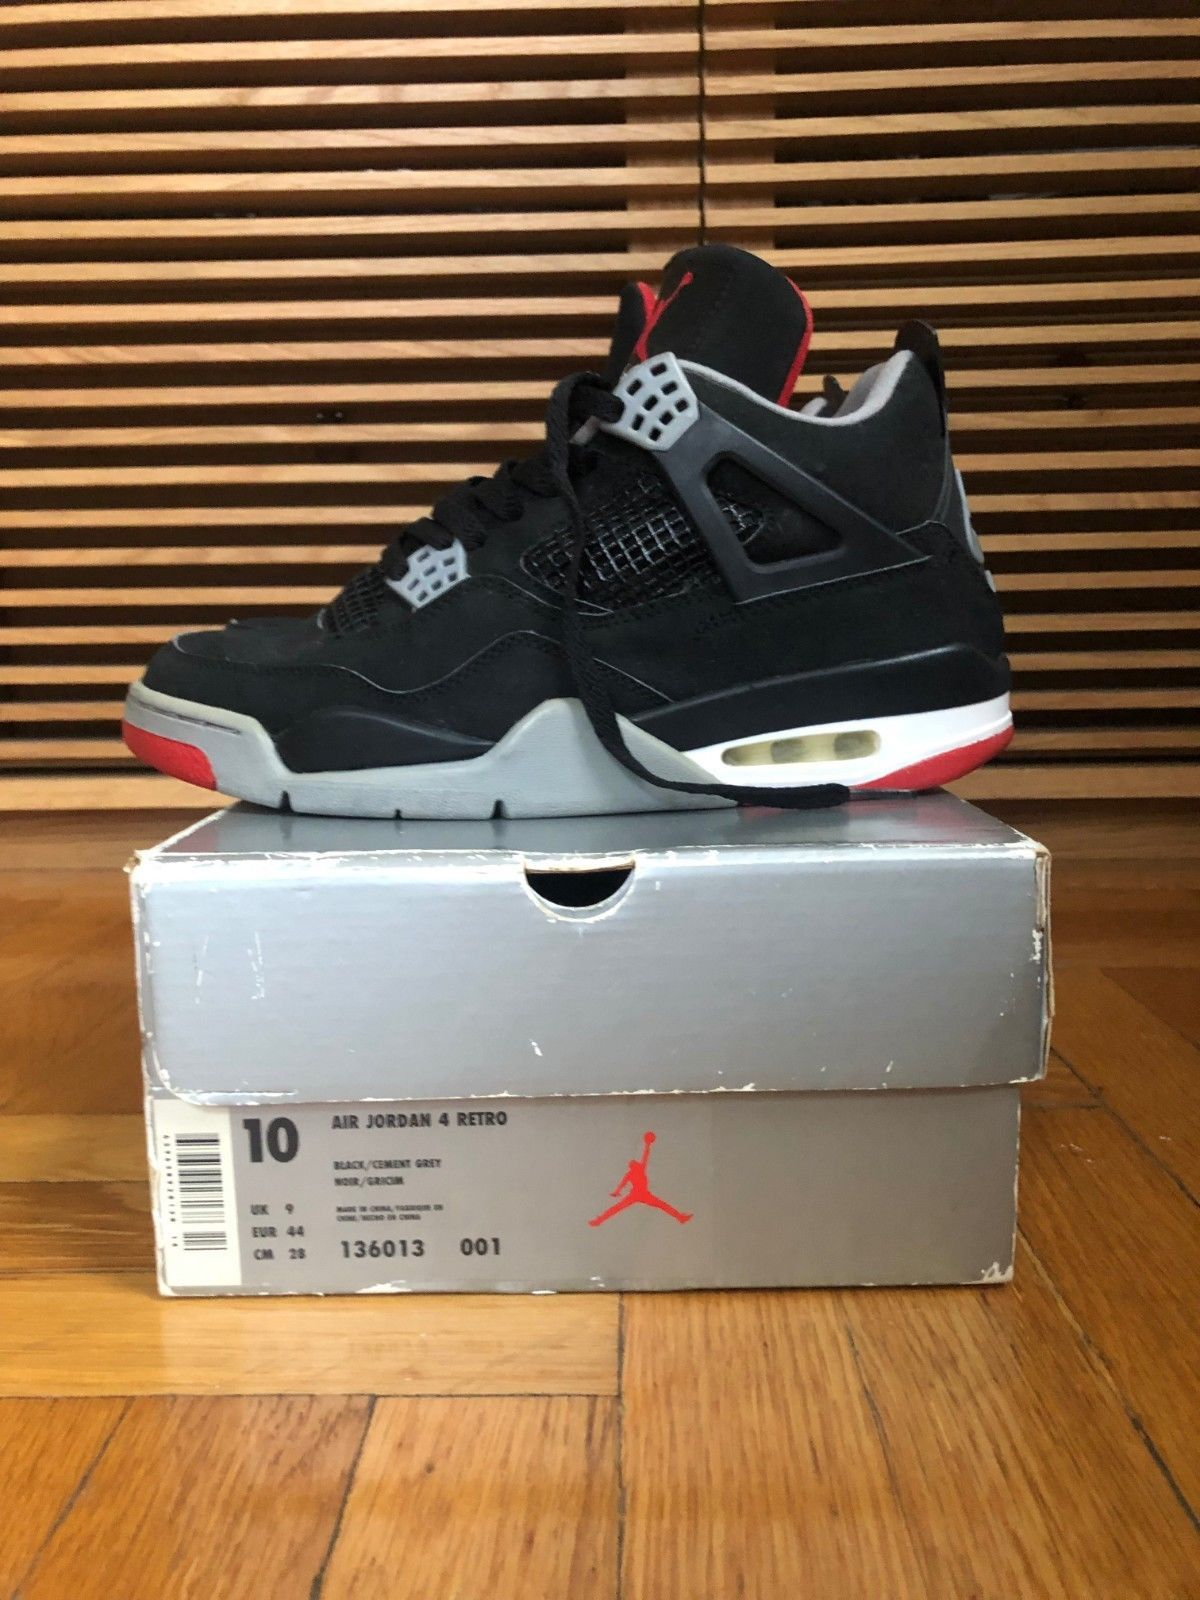 8363f0b4282418 Details about AIR JORDAN BRED 4 IV 1999 RETRO NEW SIZE 10 BLACK ...